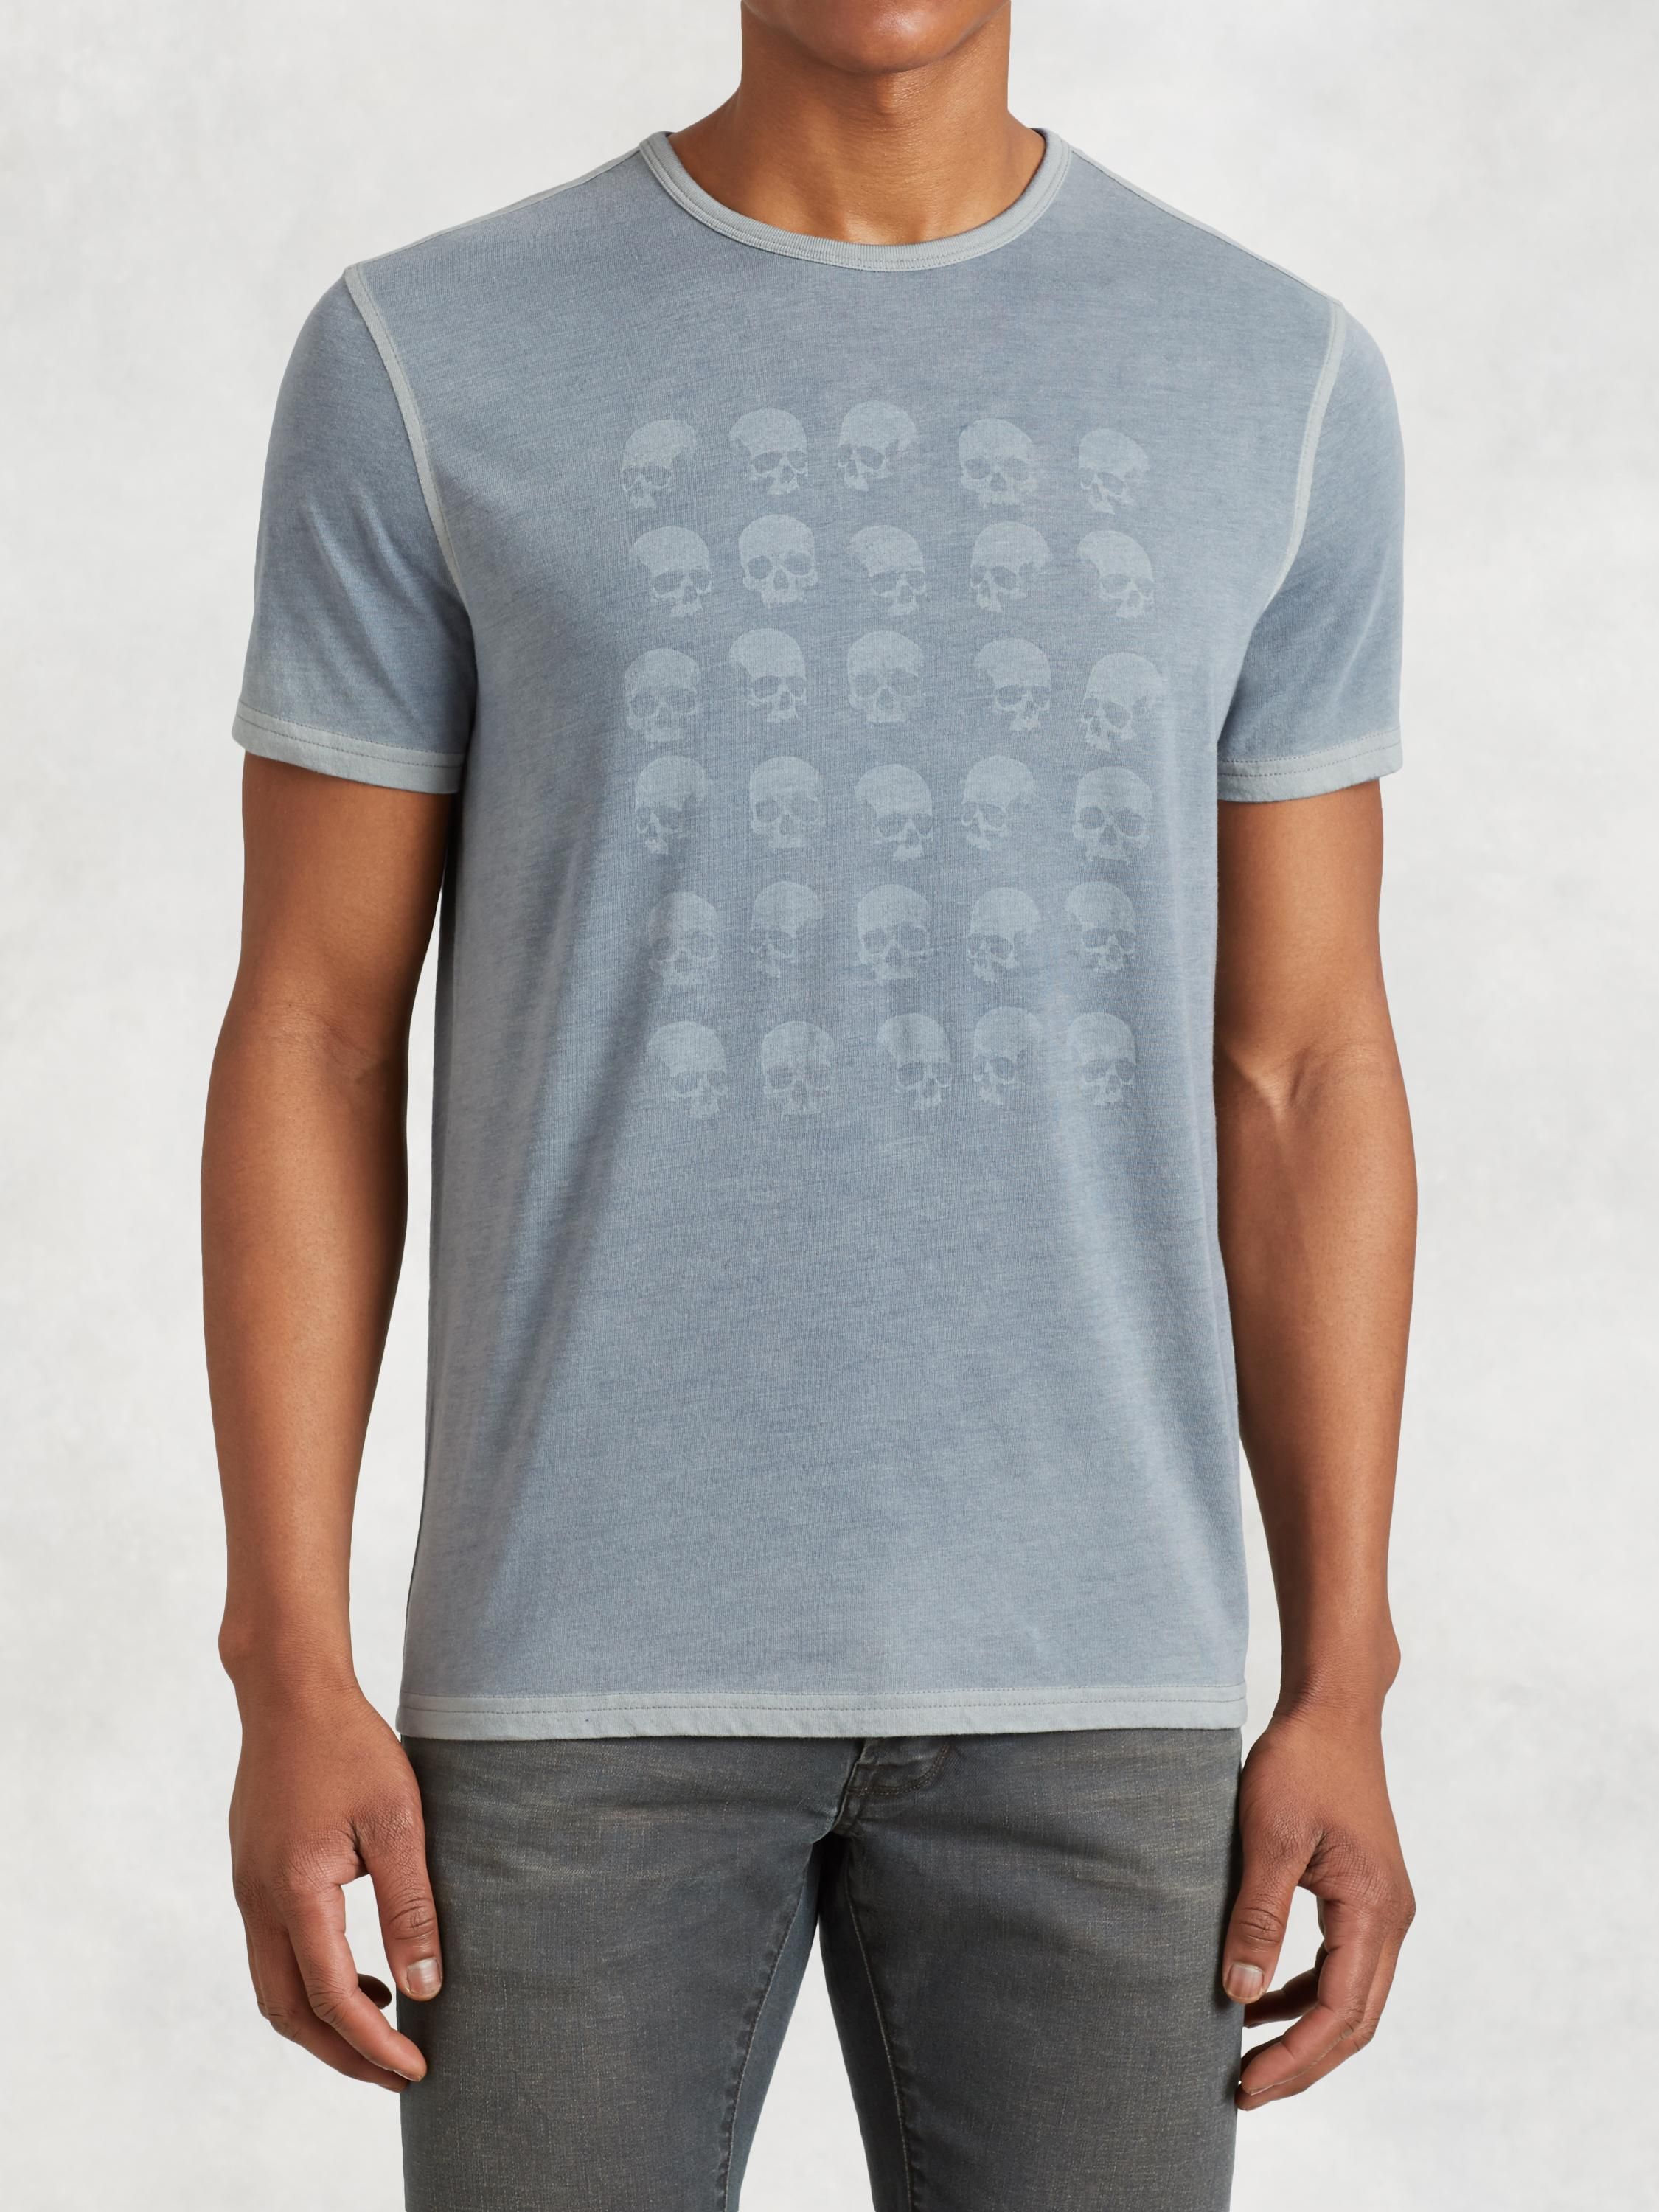 Skull Rows Graphic Tee